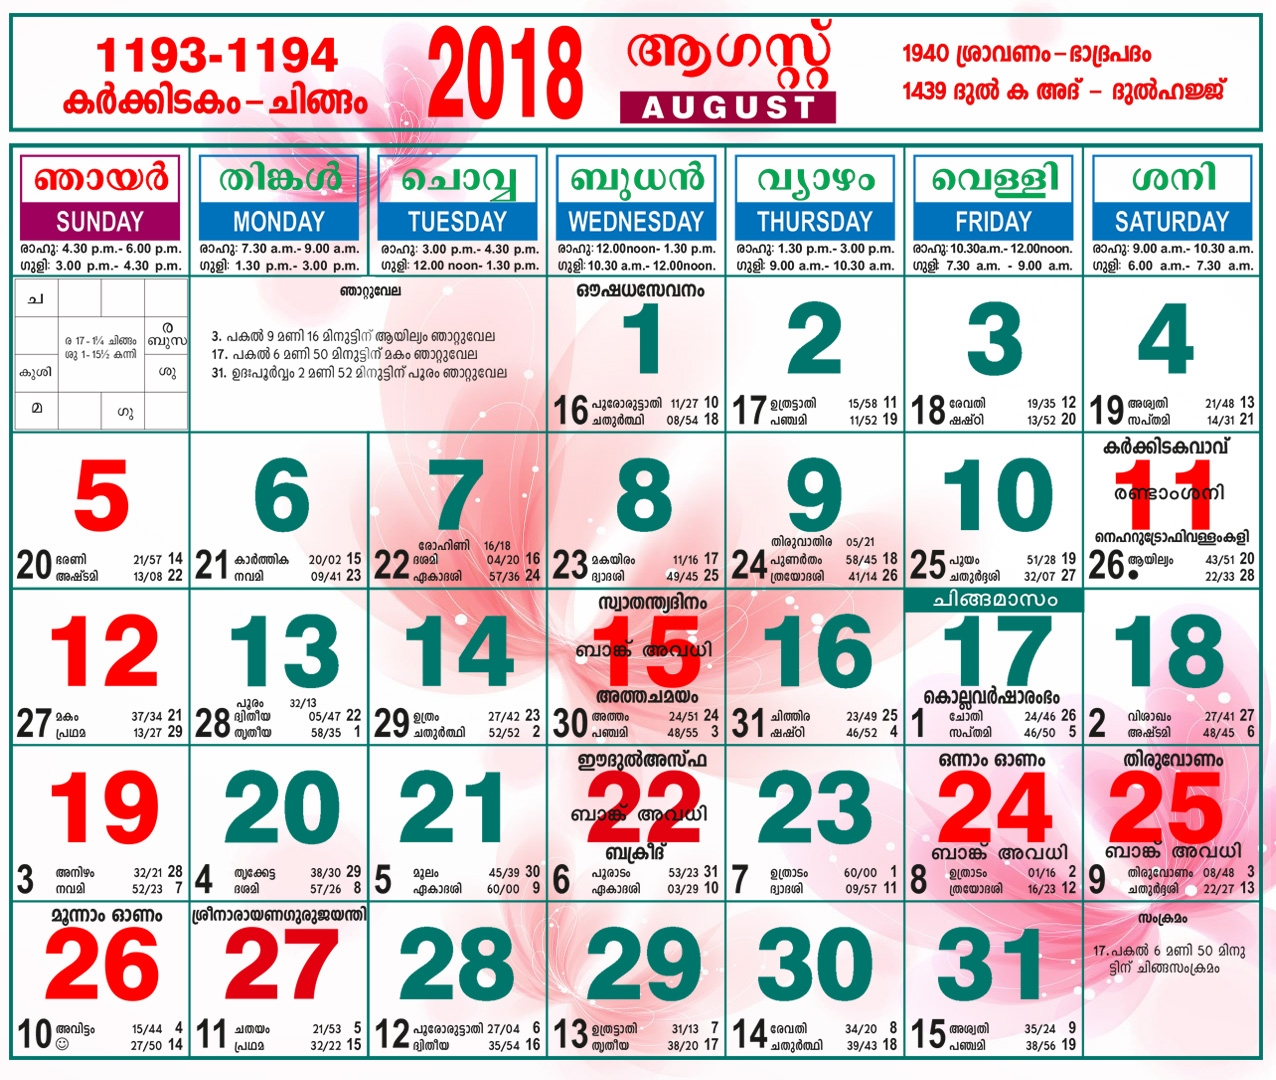 august 2018 calendar malayalam free printable blank calendar Kerala Government Calendar 2018 Pdf Free Download erdferdf